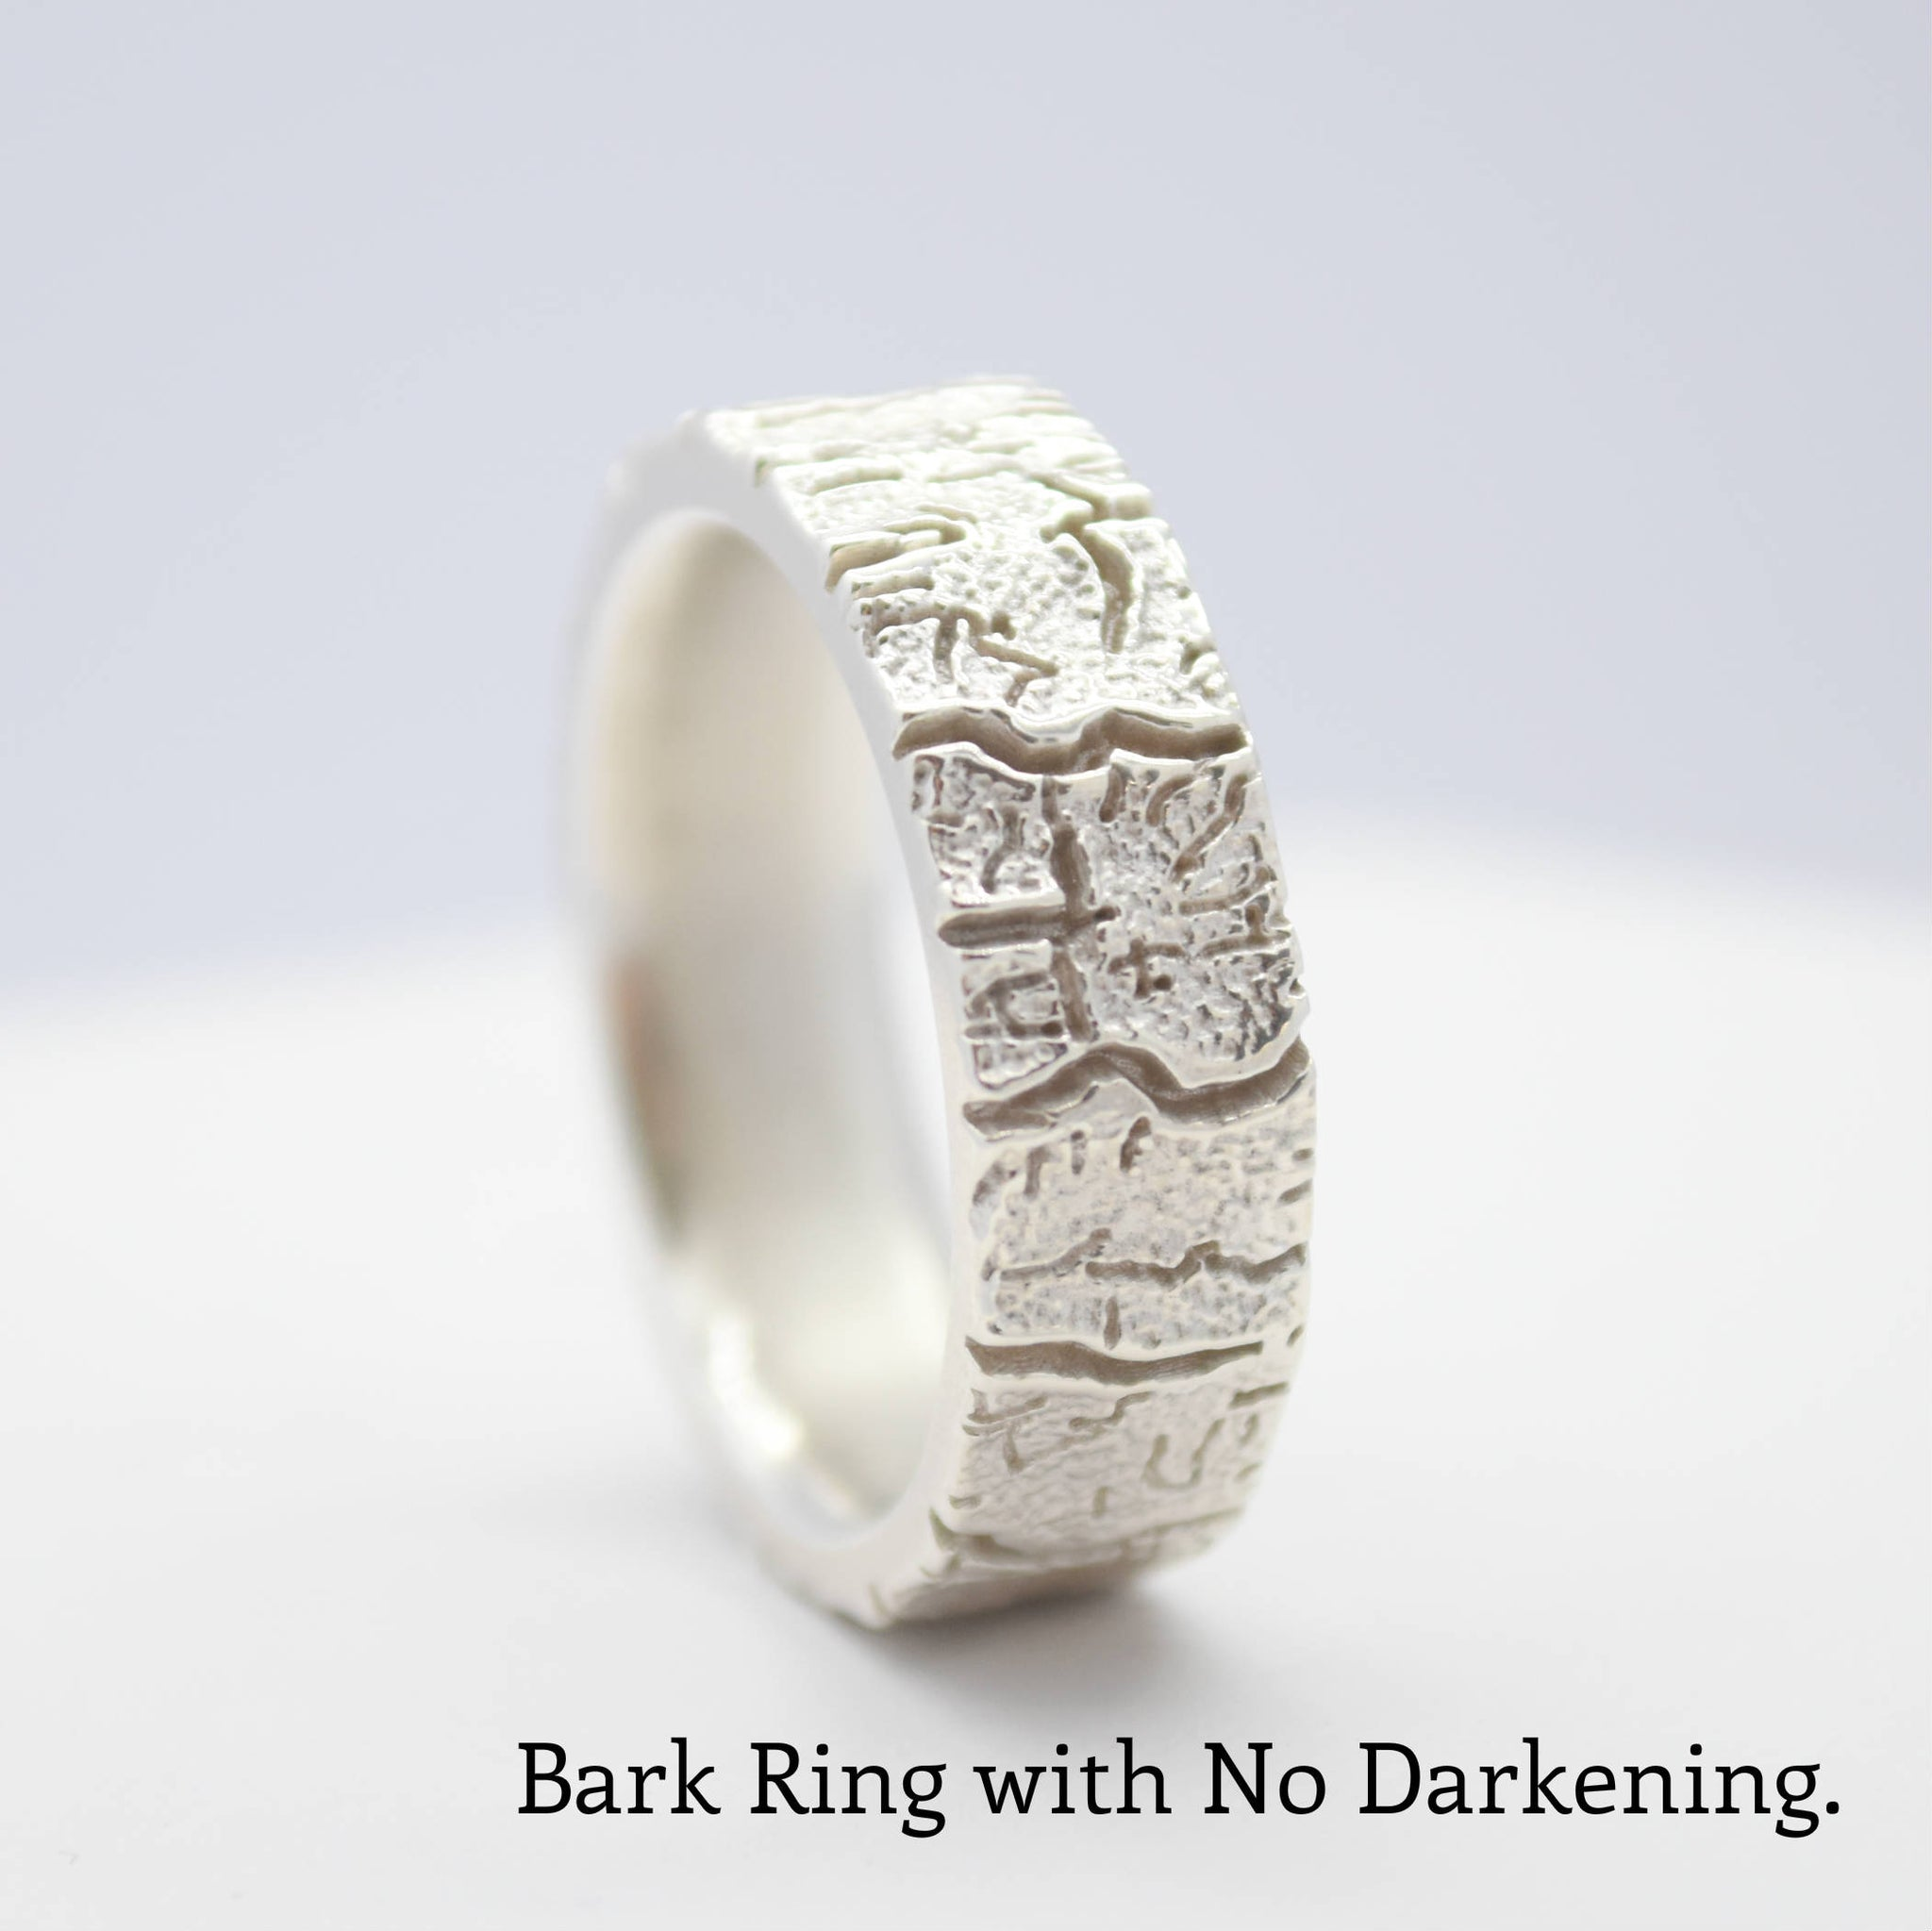 tree bark art protective layer richmond virginia 4mm 18 inch bark ring sterling silver hand forged ring shade metals tree bark ring